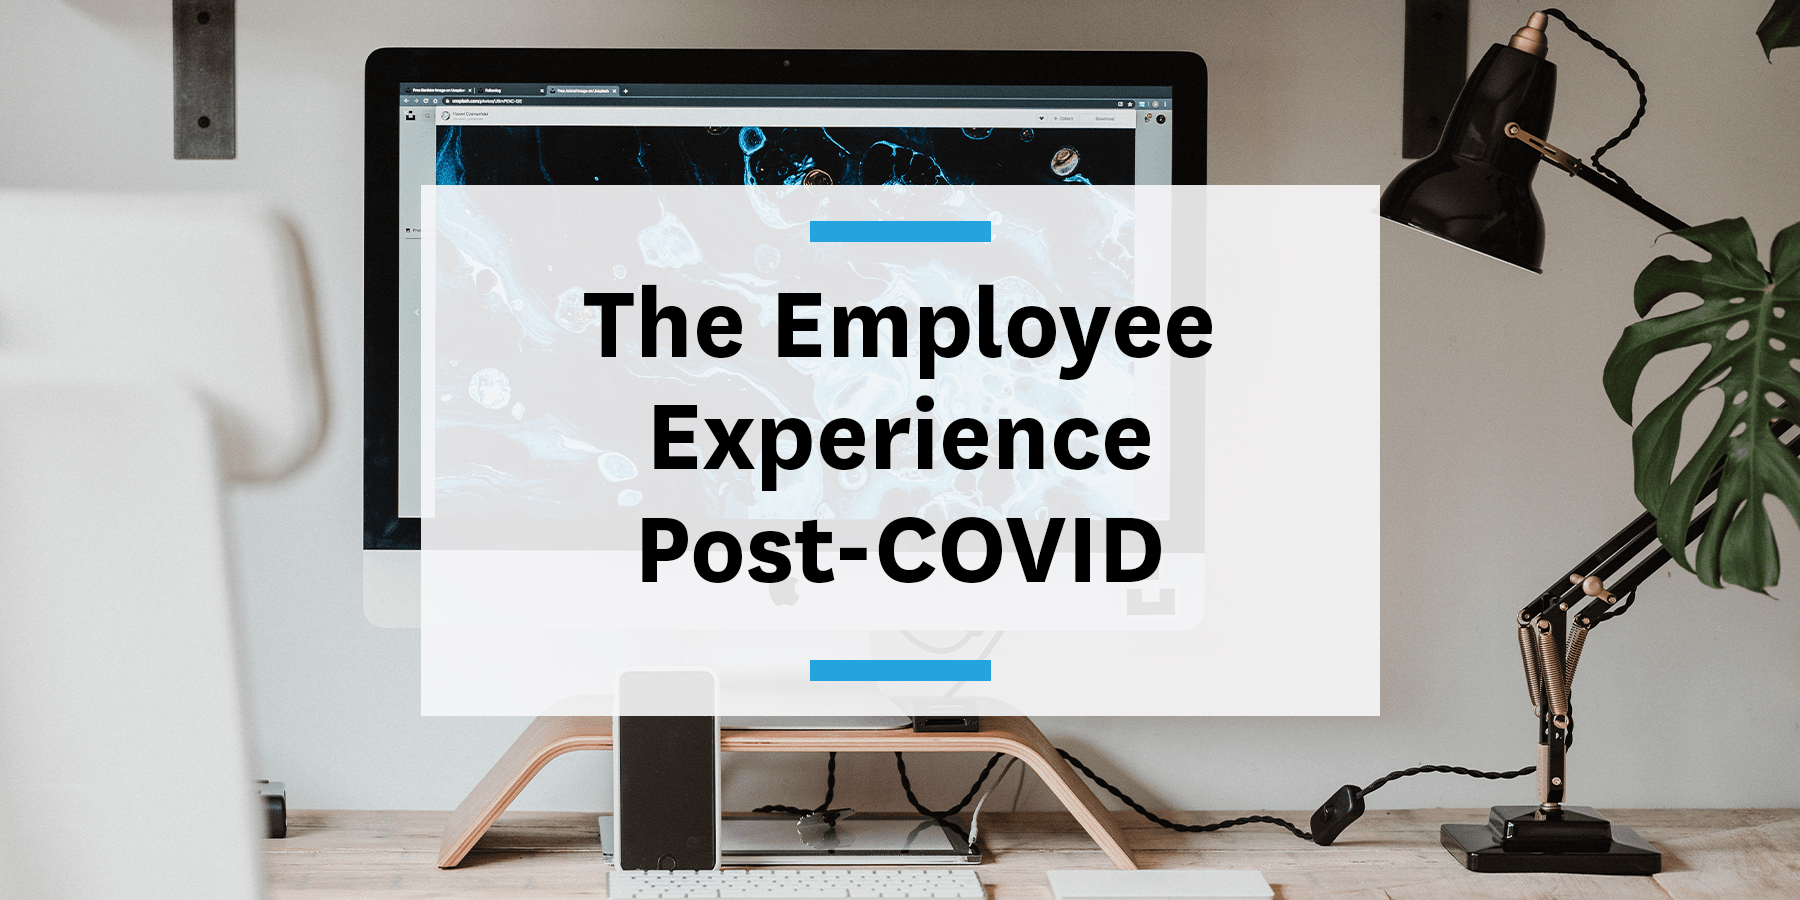 What your employee experience will look like post-COVID